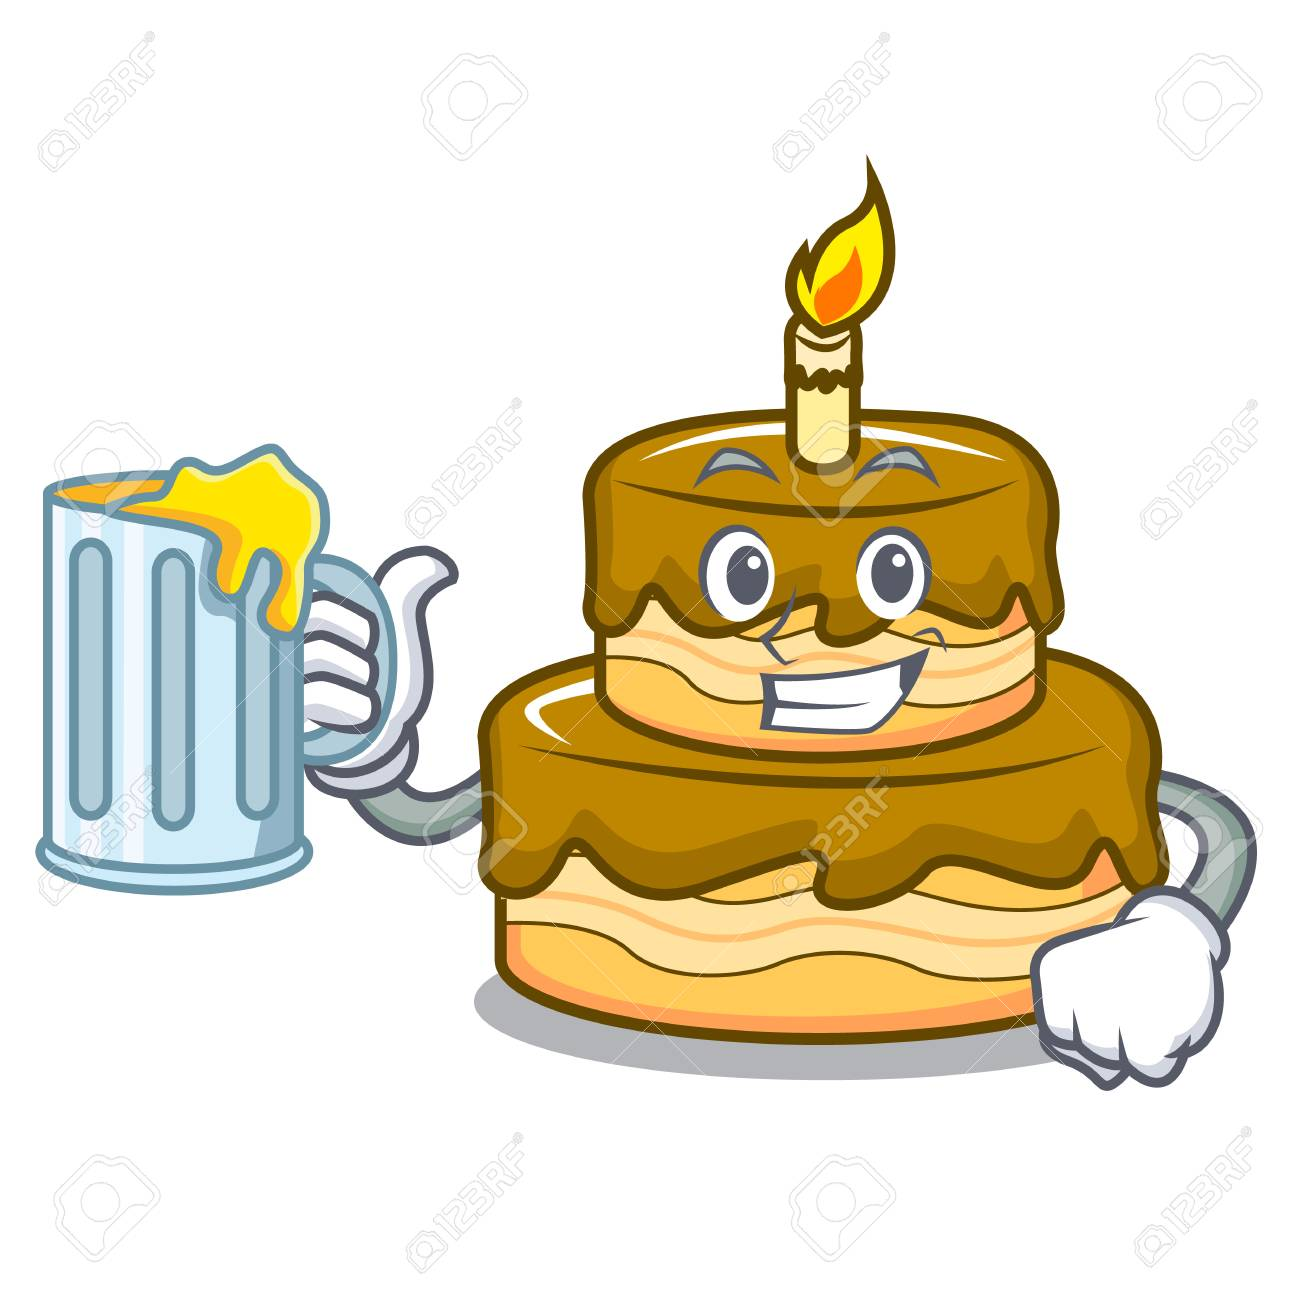 With Beer Birthday Cake Mascot Cartoon Vector Illustration Royalty